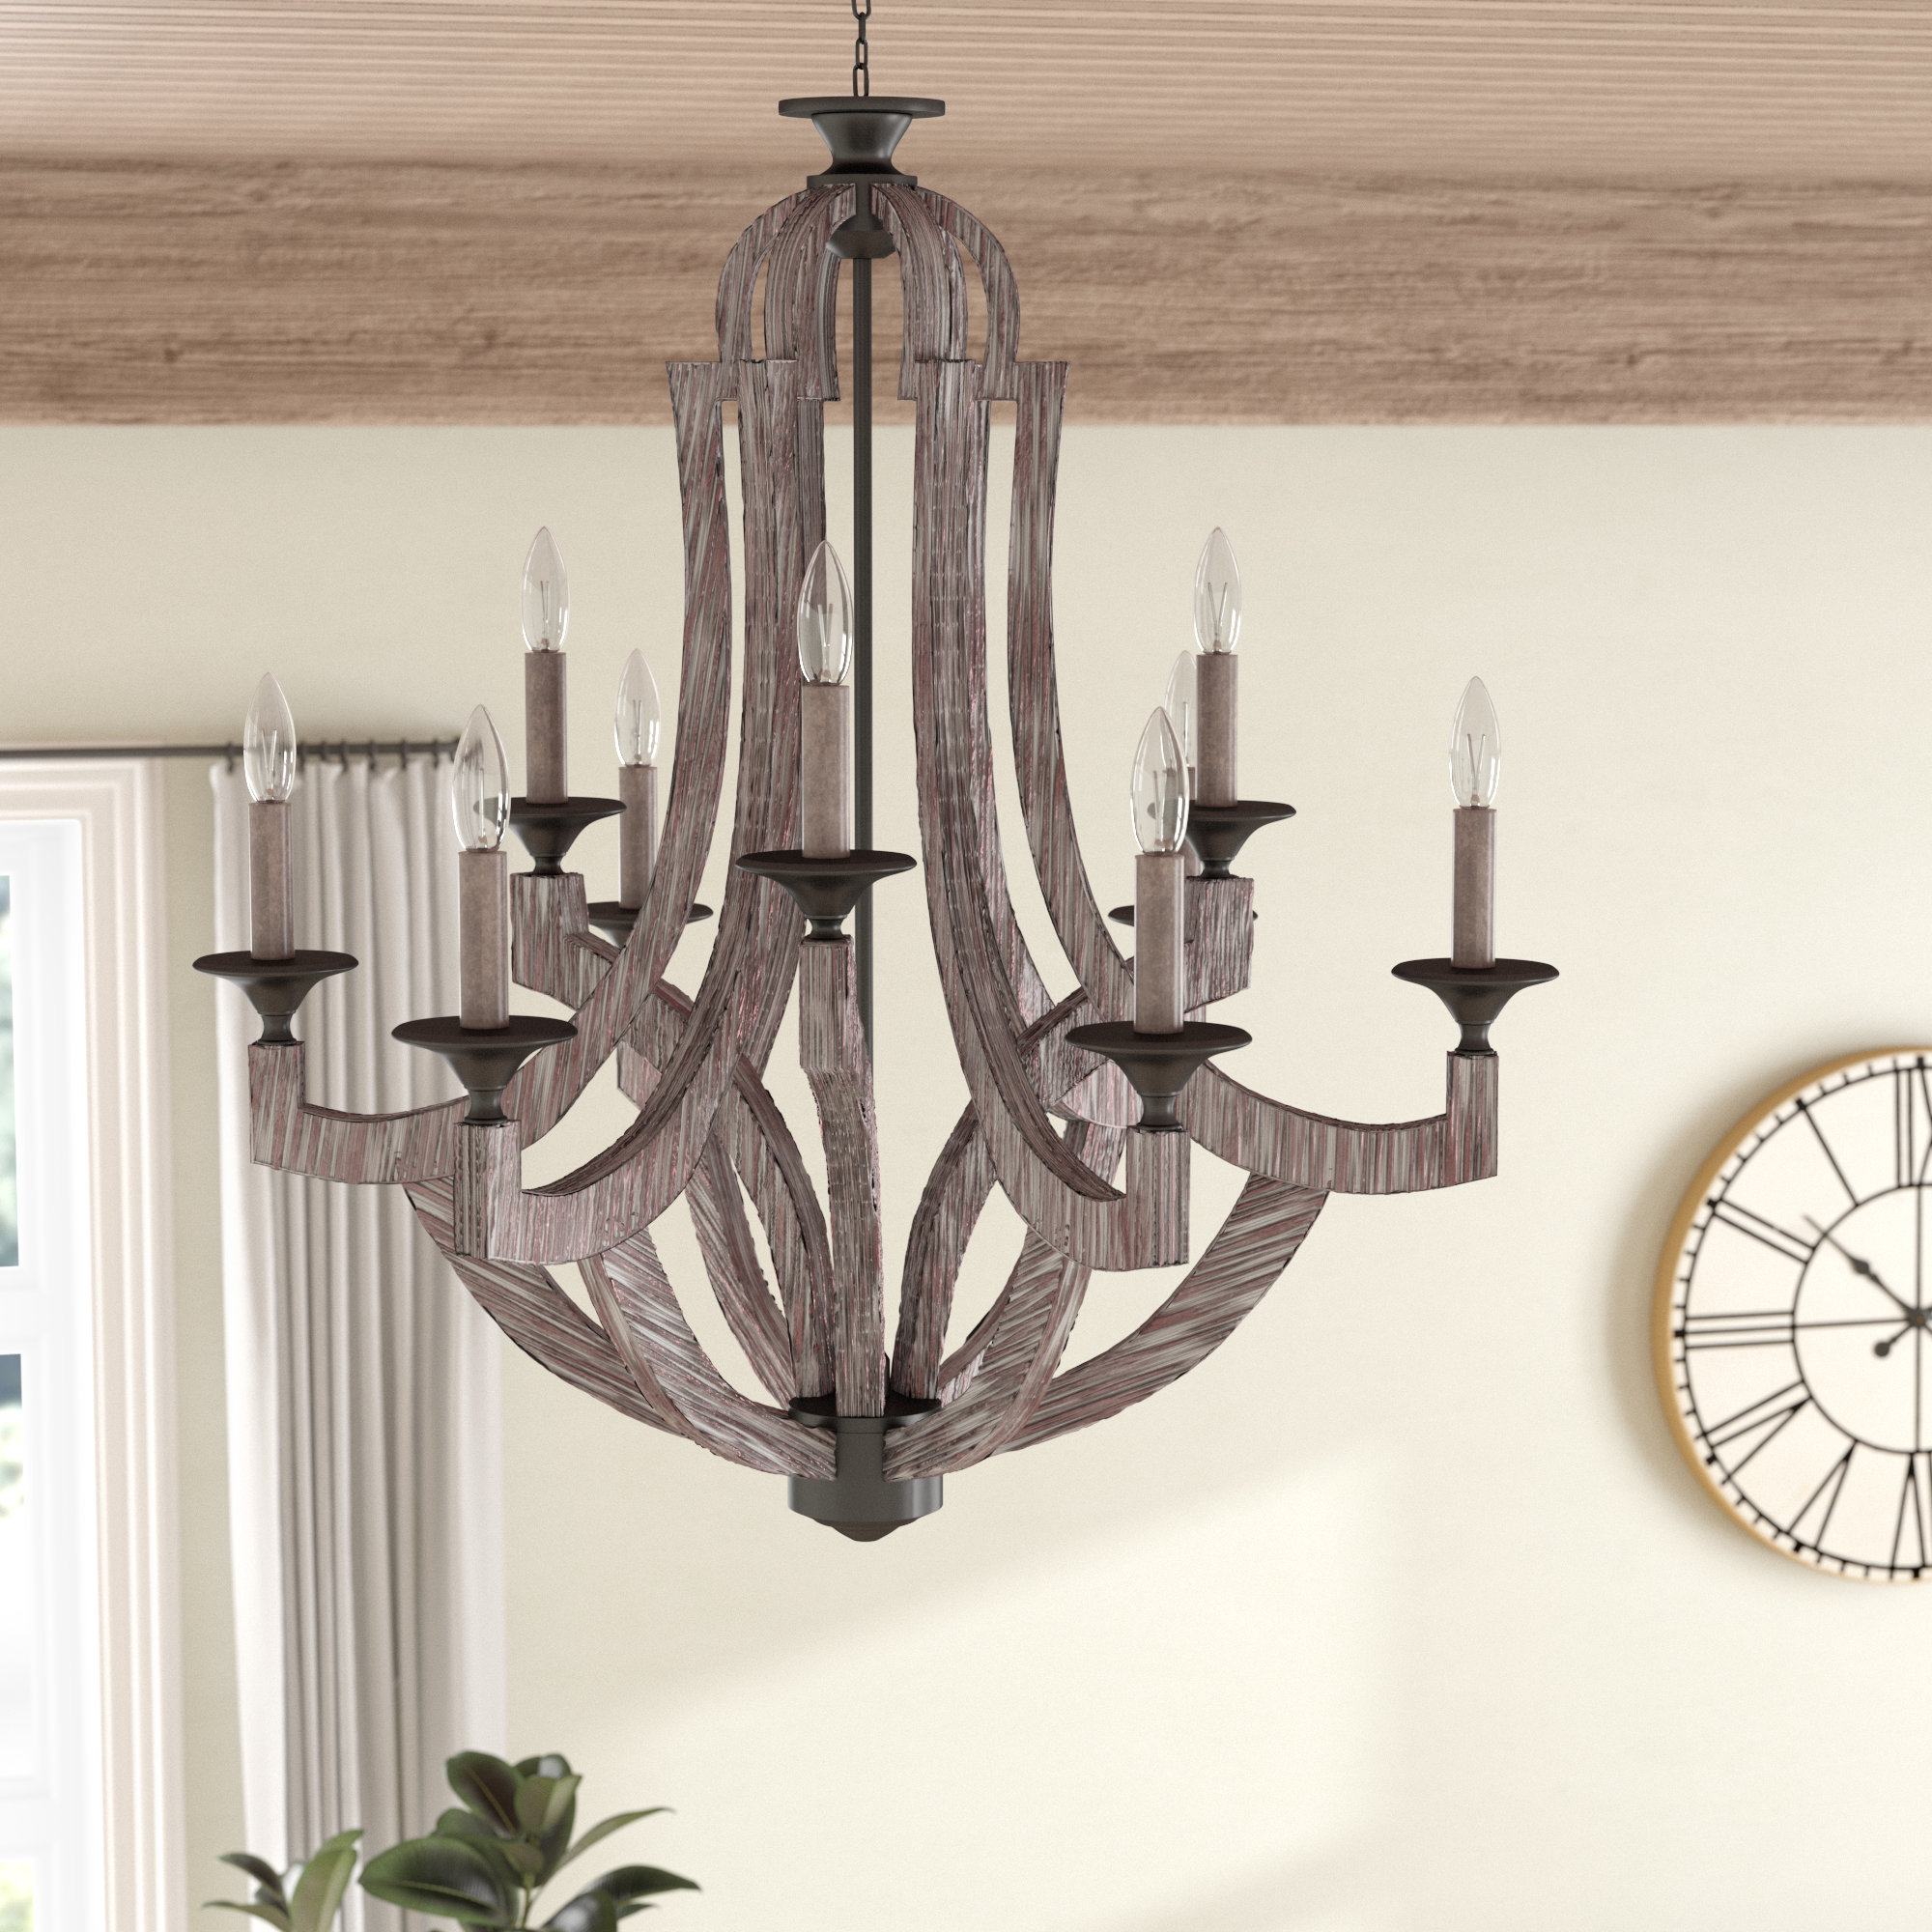 Wayfair Regarding Kenedy 9 Light Candle Style Chandeliers (View 20 of 20)